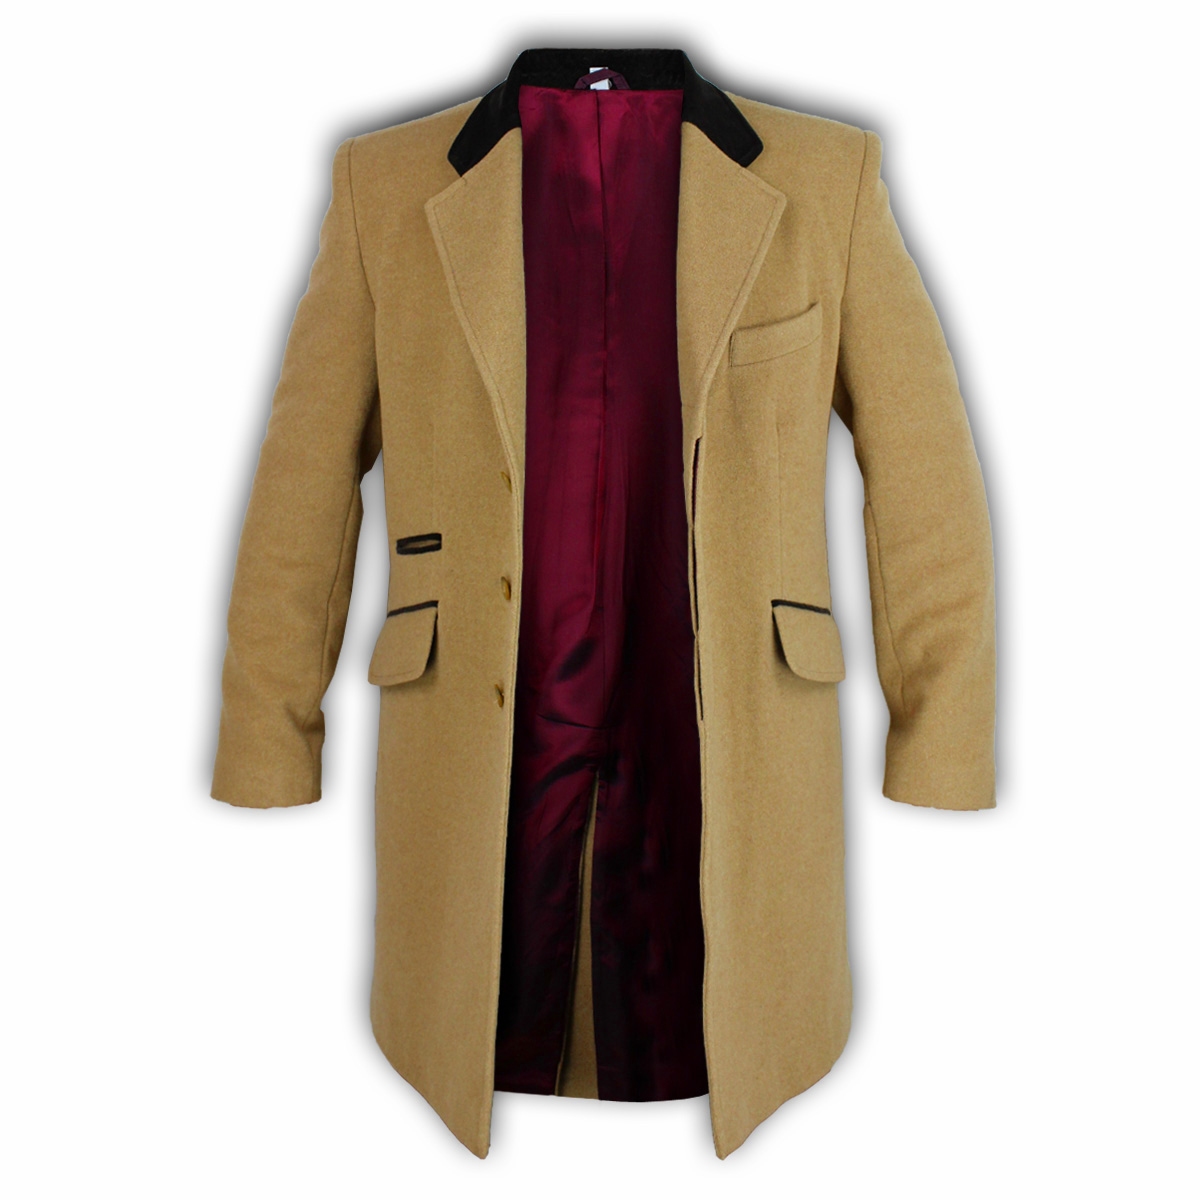 homme manteau veste en laine cachemire d contract outerwear pardessus trench doublure hiver ebay. Black Bedroom Furniture Sets. Home Design Ideas